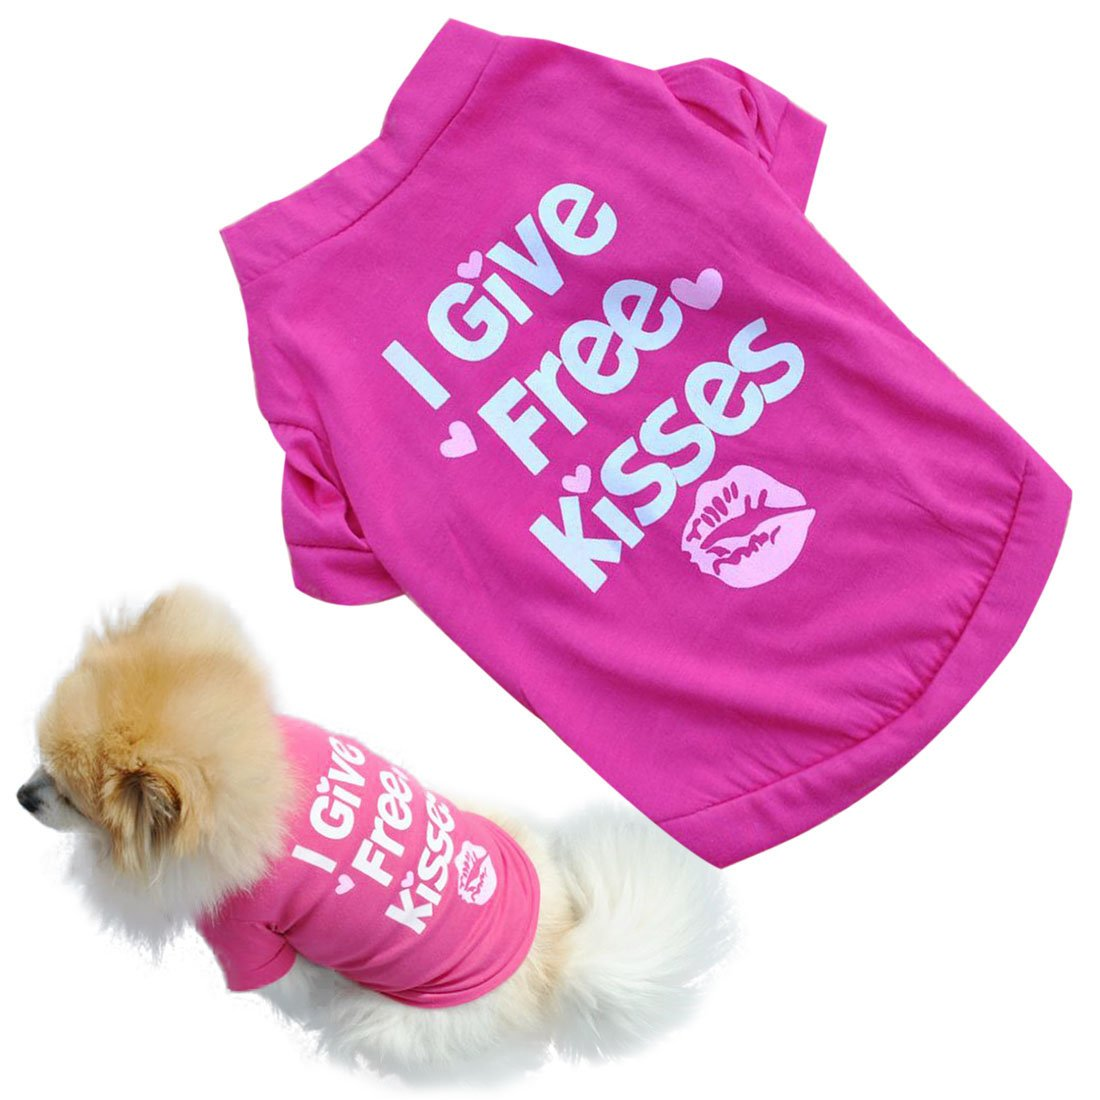 Binmer Fashion Pet Dog Clothes Cat Puppy Pet Puppy Spring Summer Shirt Small